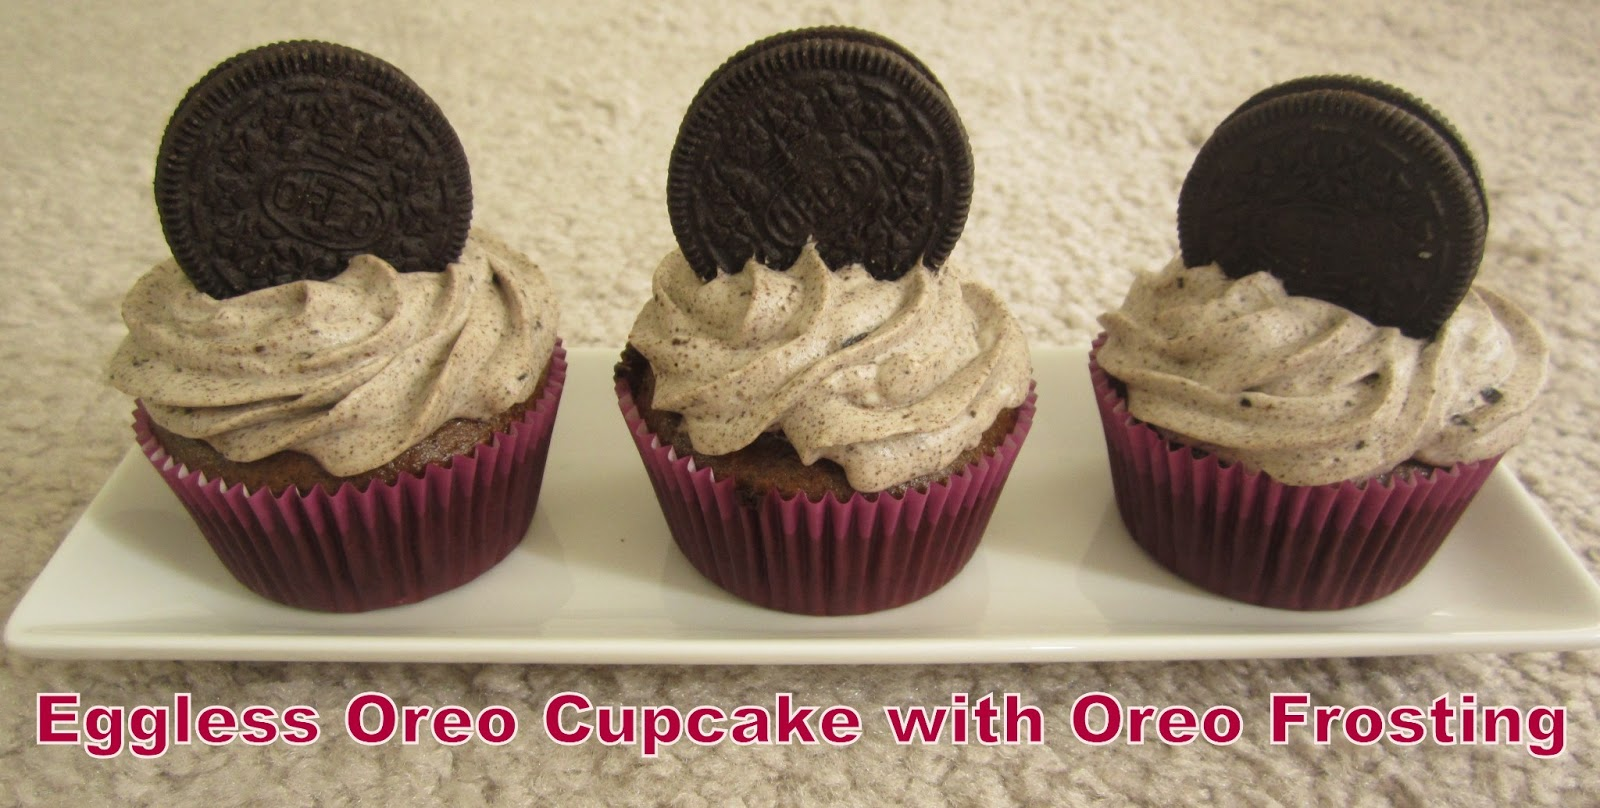 Eggless Cupcake Recipes